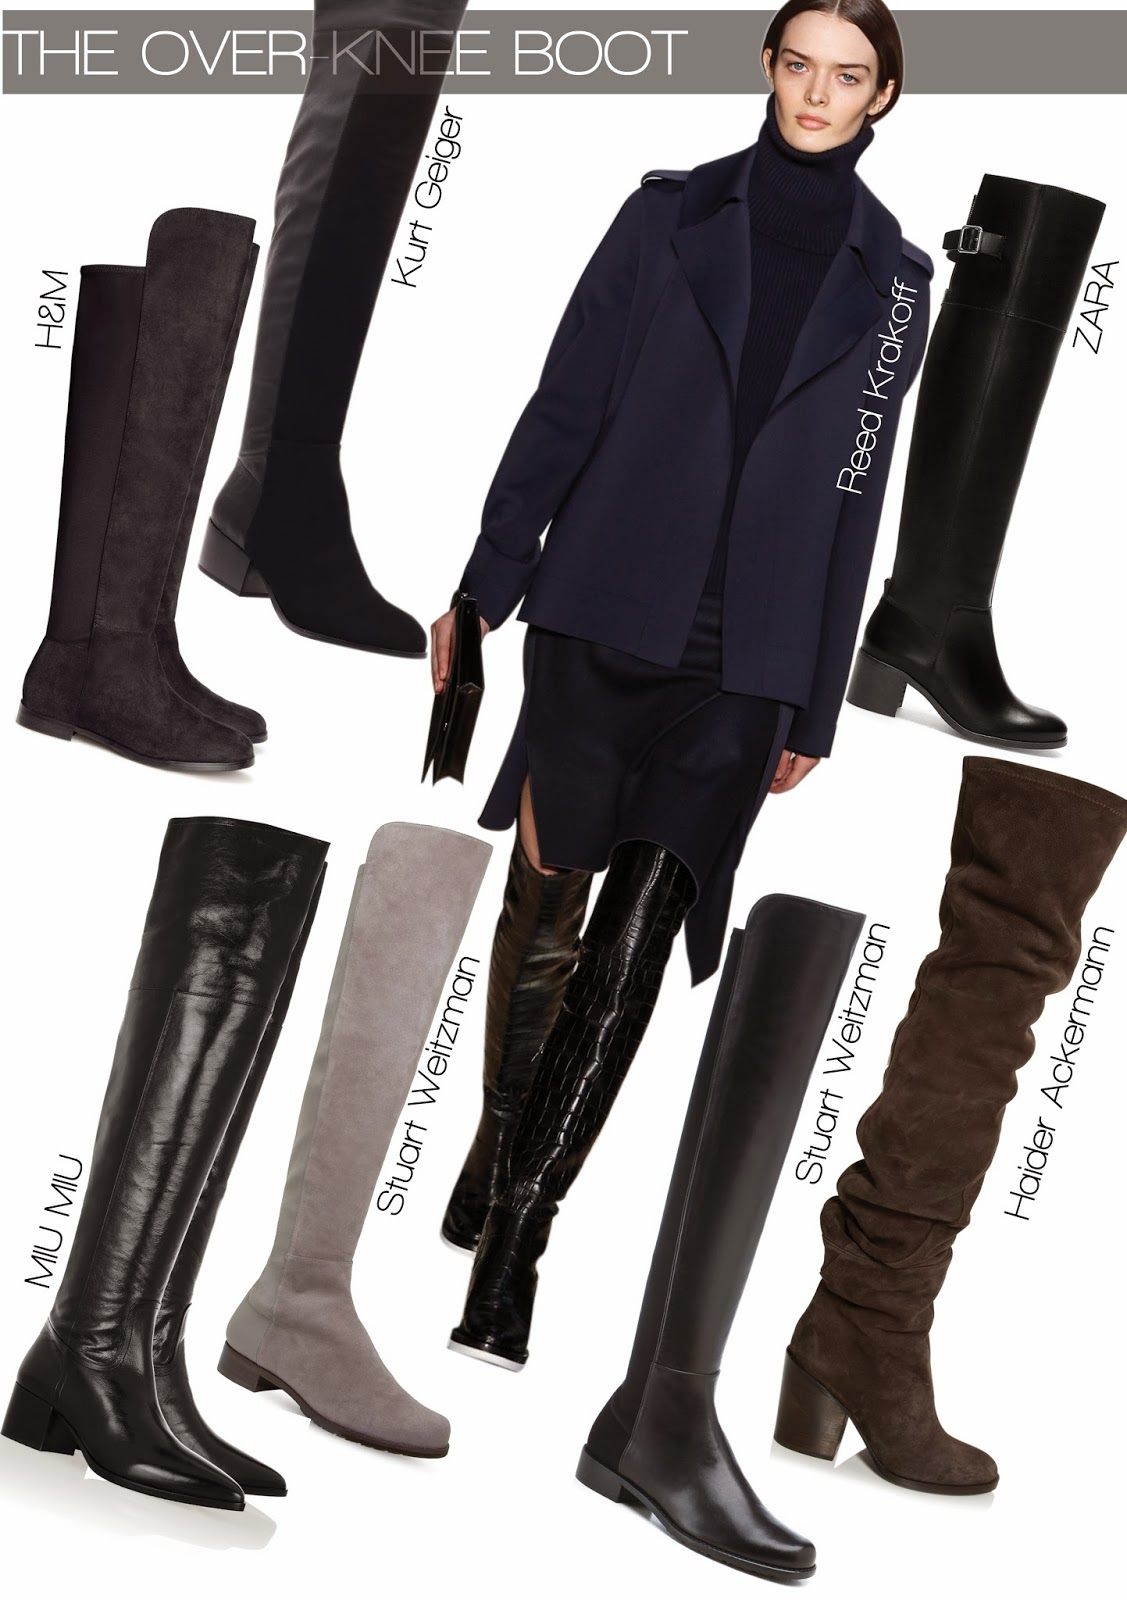 The Over-Knee Boot Trend